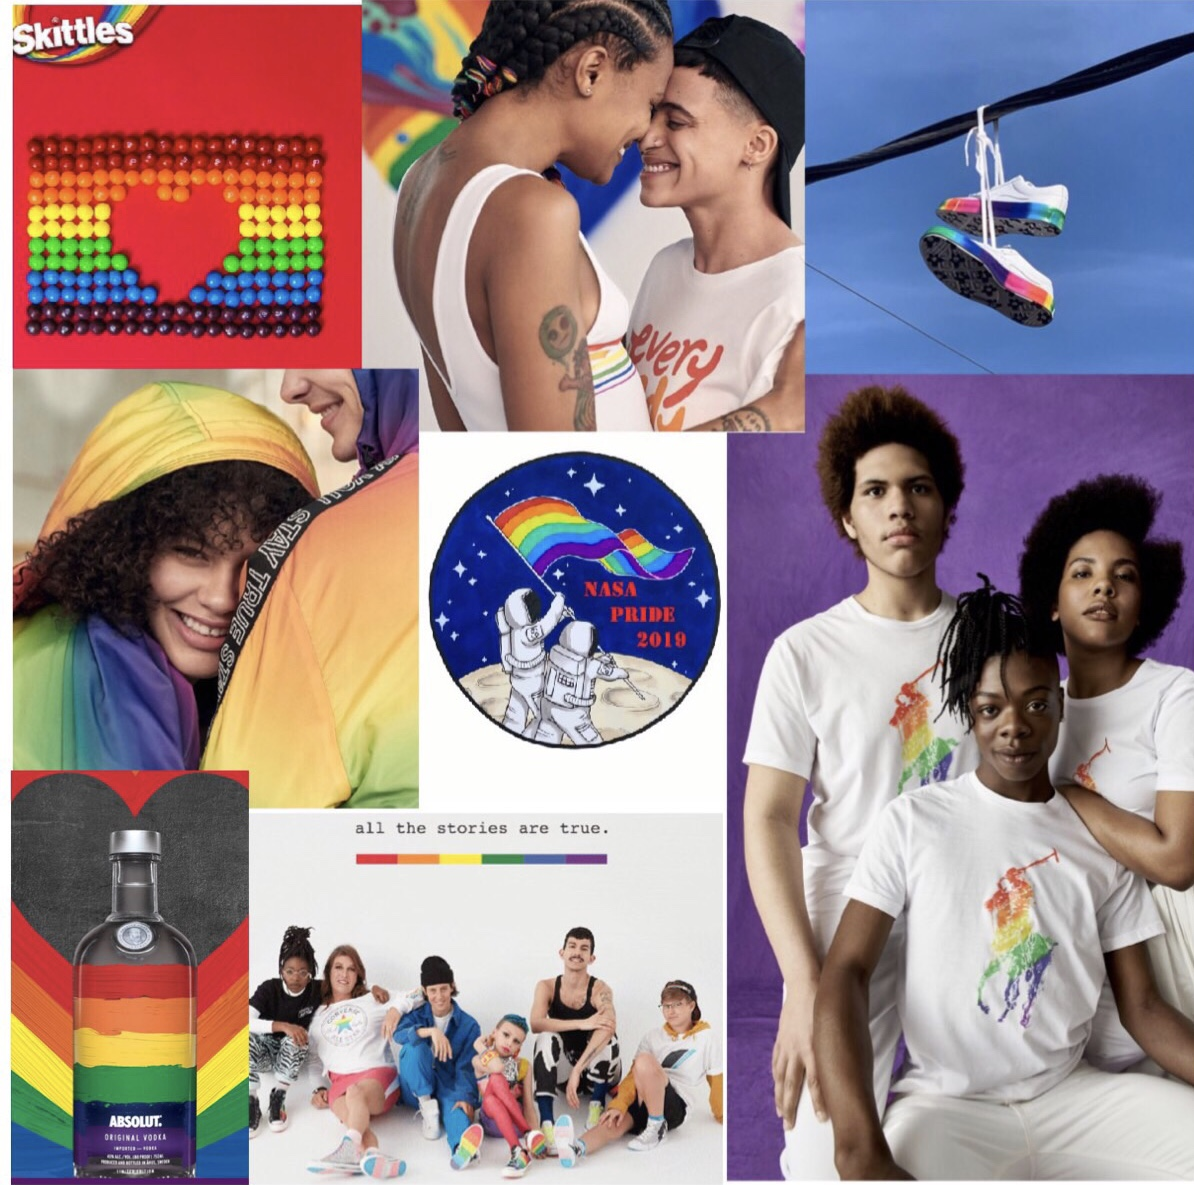 From left to right, Skittles, H&M, Converse and GOLF, H&M, Nasa, Ralph Lauren, Absolut and Converse.. I own none of these dang pictures but I am showing you some brands donating to the LGBTQ+ community